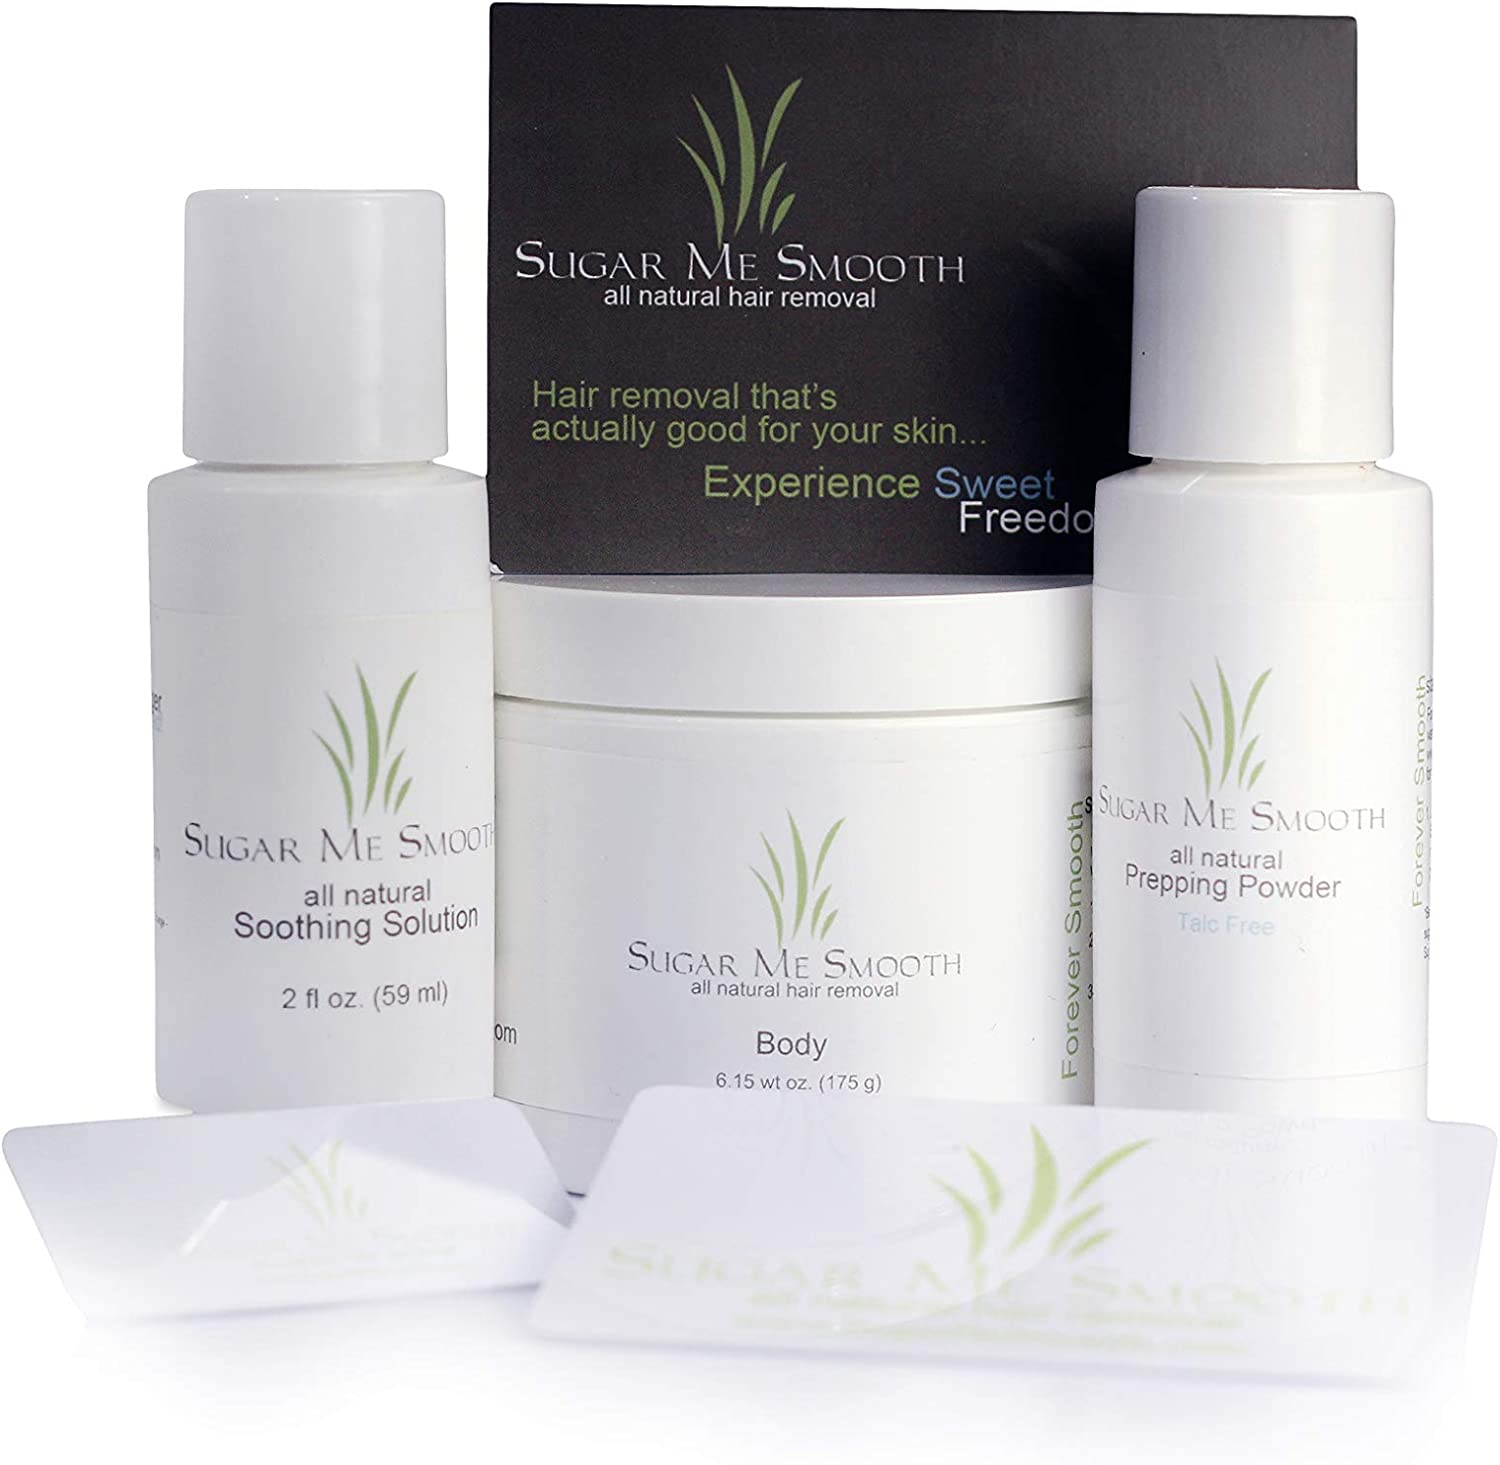 Sugar Me Smooth Body Hair Removal System - All Natural Hair Removal Kit. No Strips, No Heat & Less Pain!